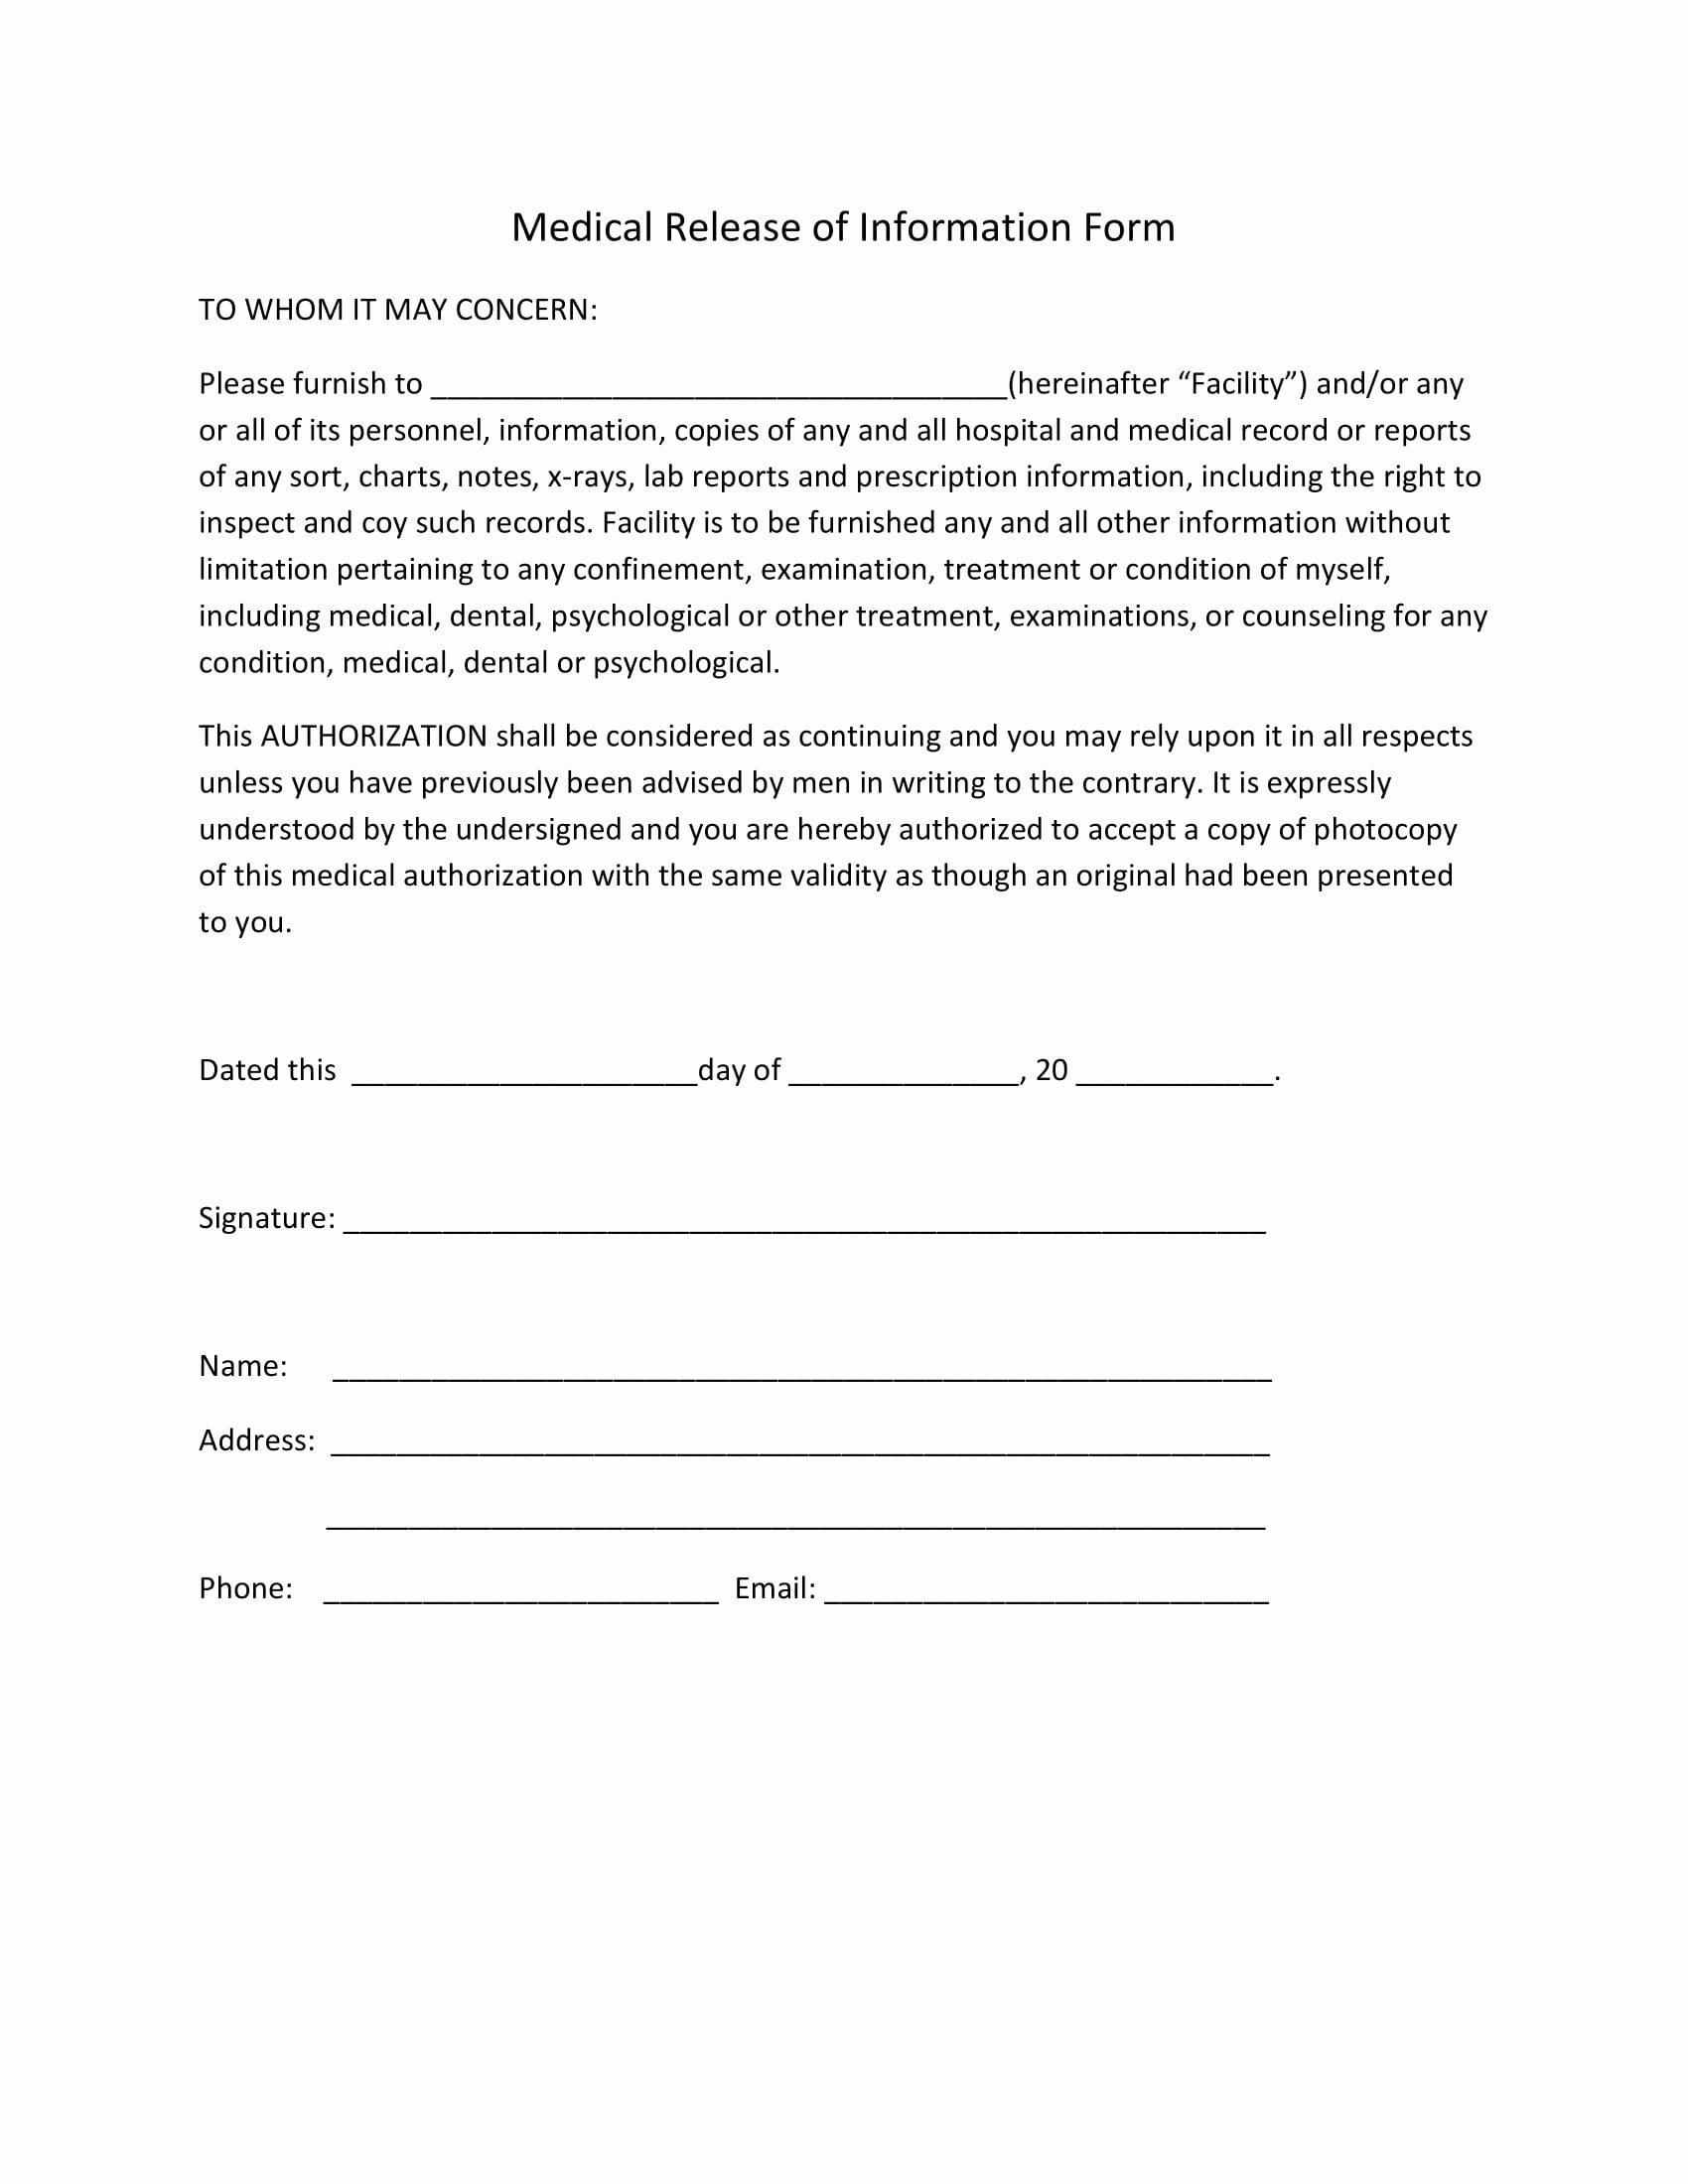 Medical Records Release form Template Luxury Medical Release forms